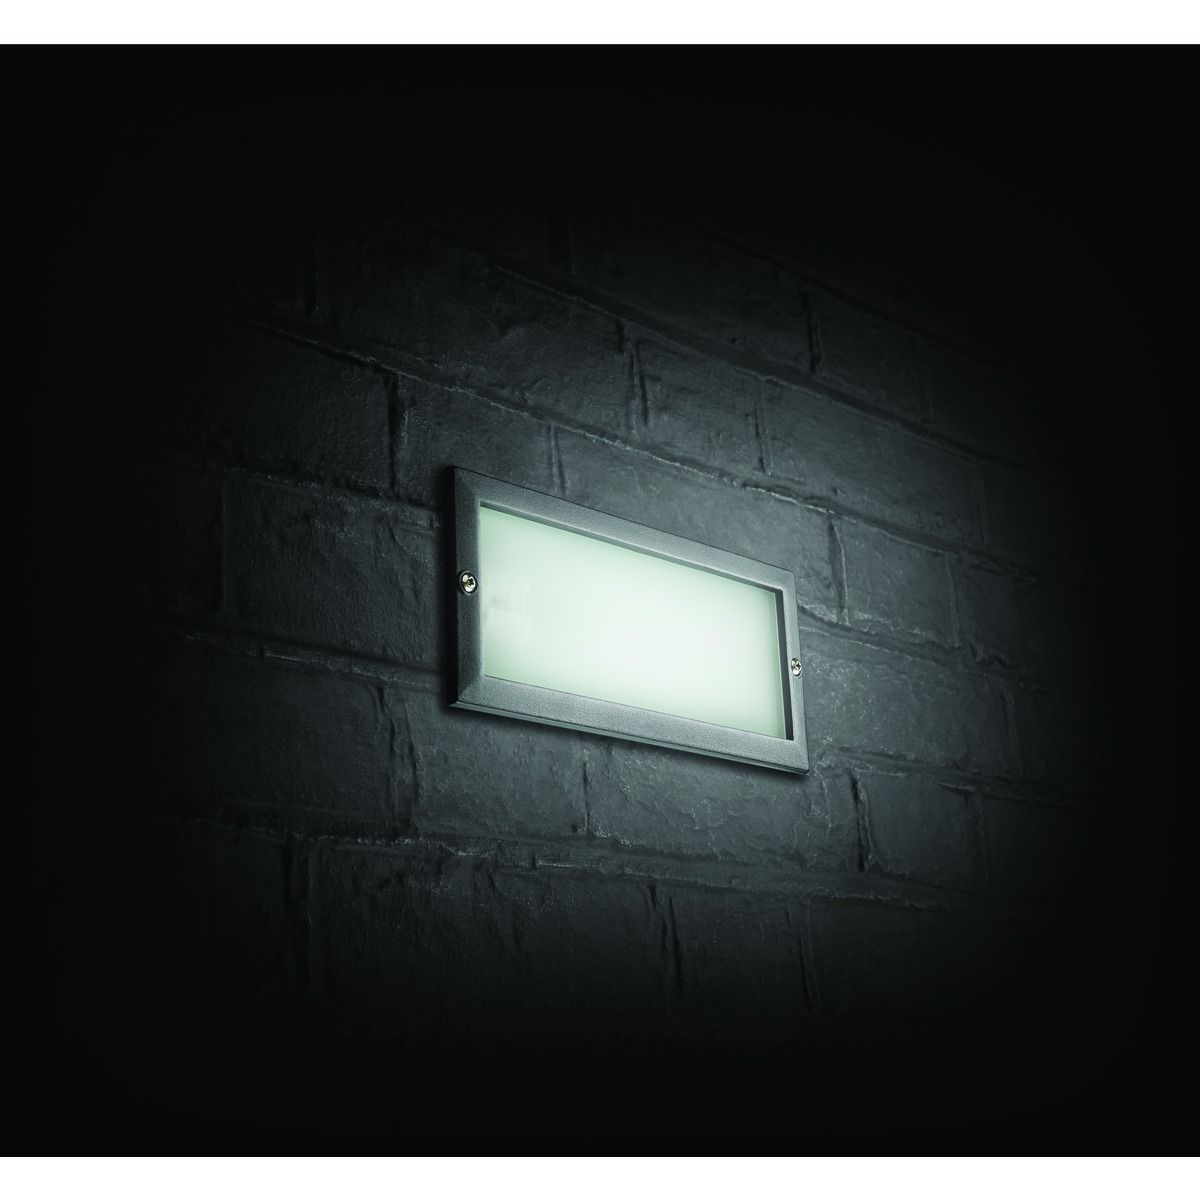 Wickes Garden Wall Lights : Wickes 11W Brisbane Energy Efficient Garden Wall Brick Light Wickes.co.uk